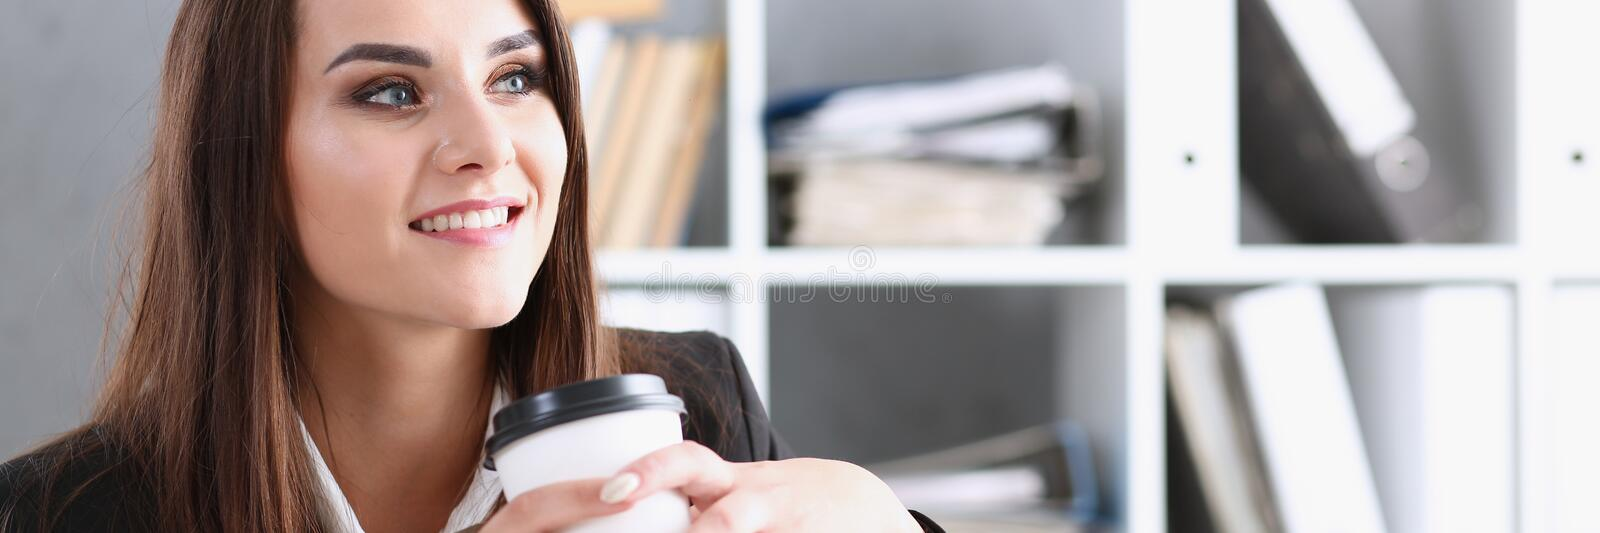 Business woman at workplace in office portrait stock photo